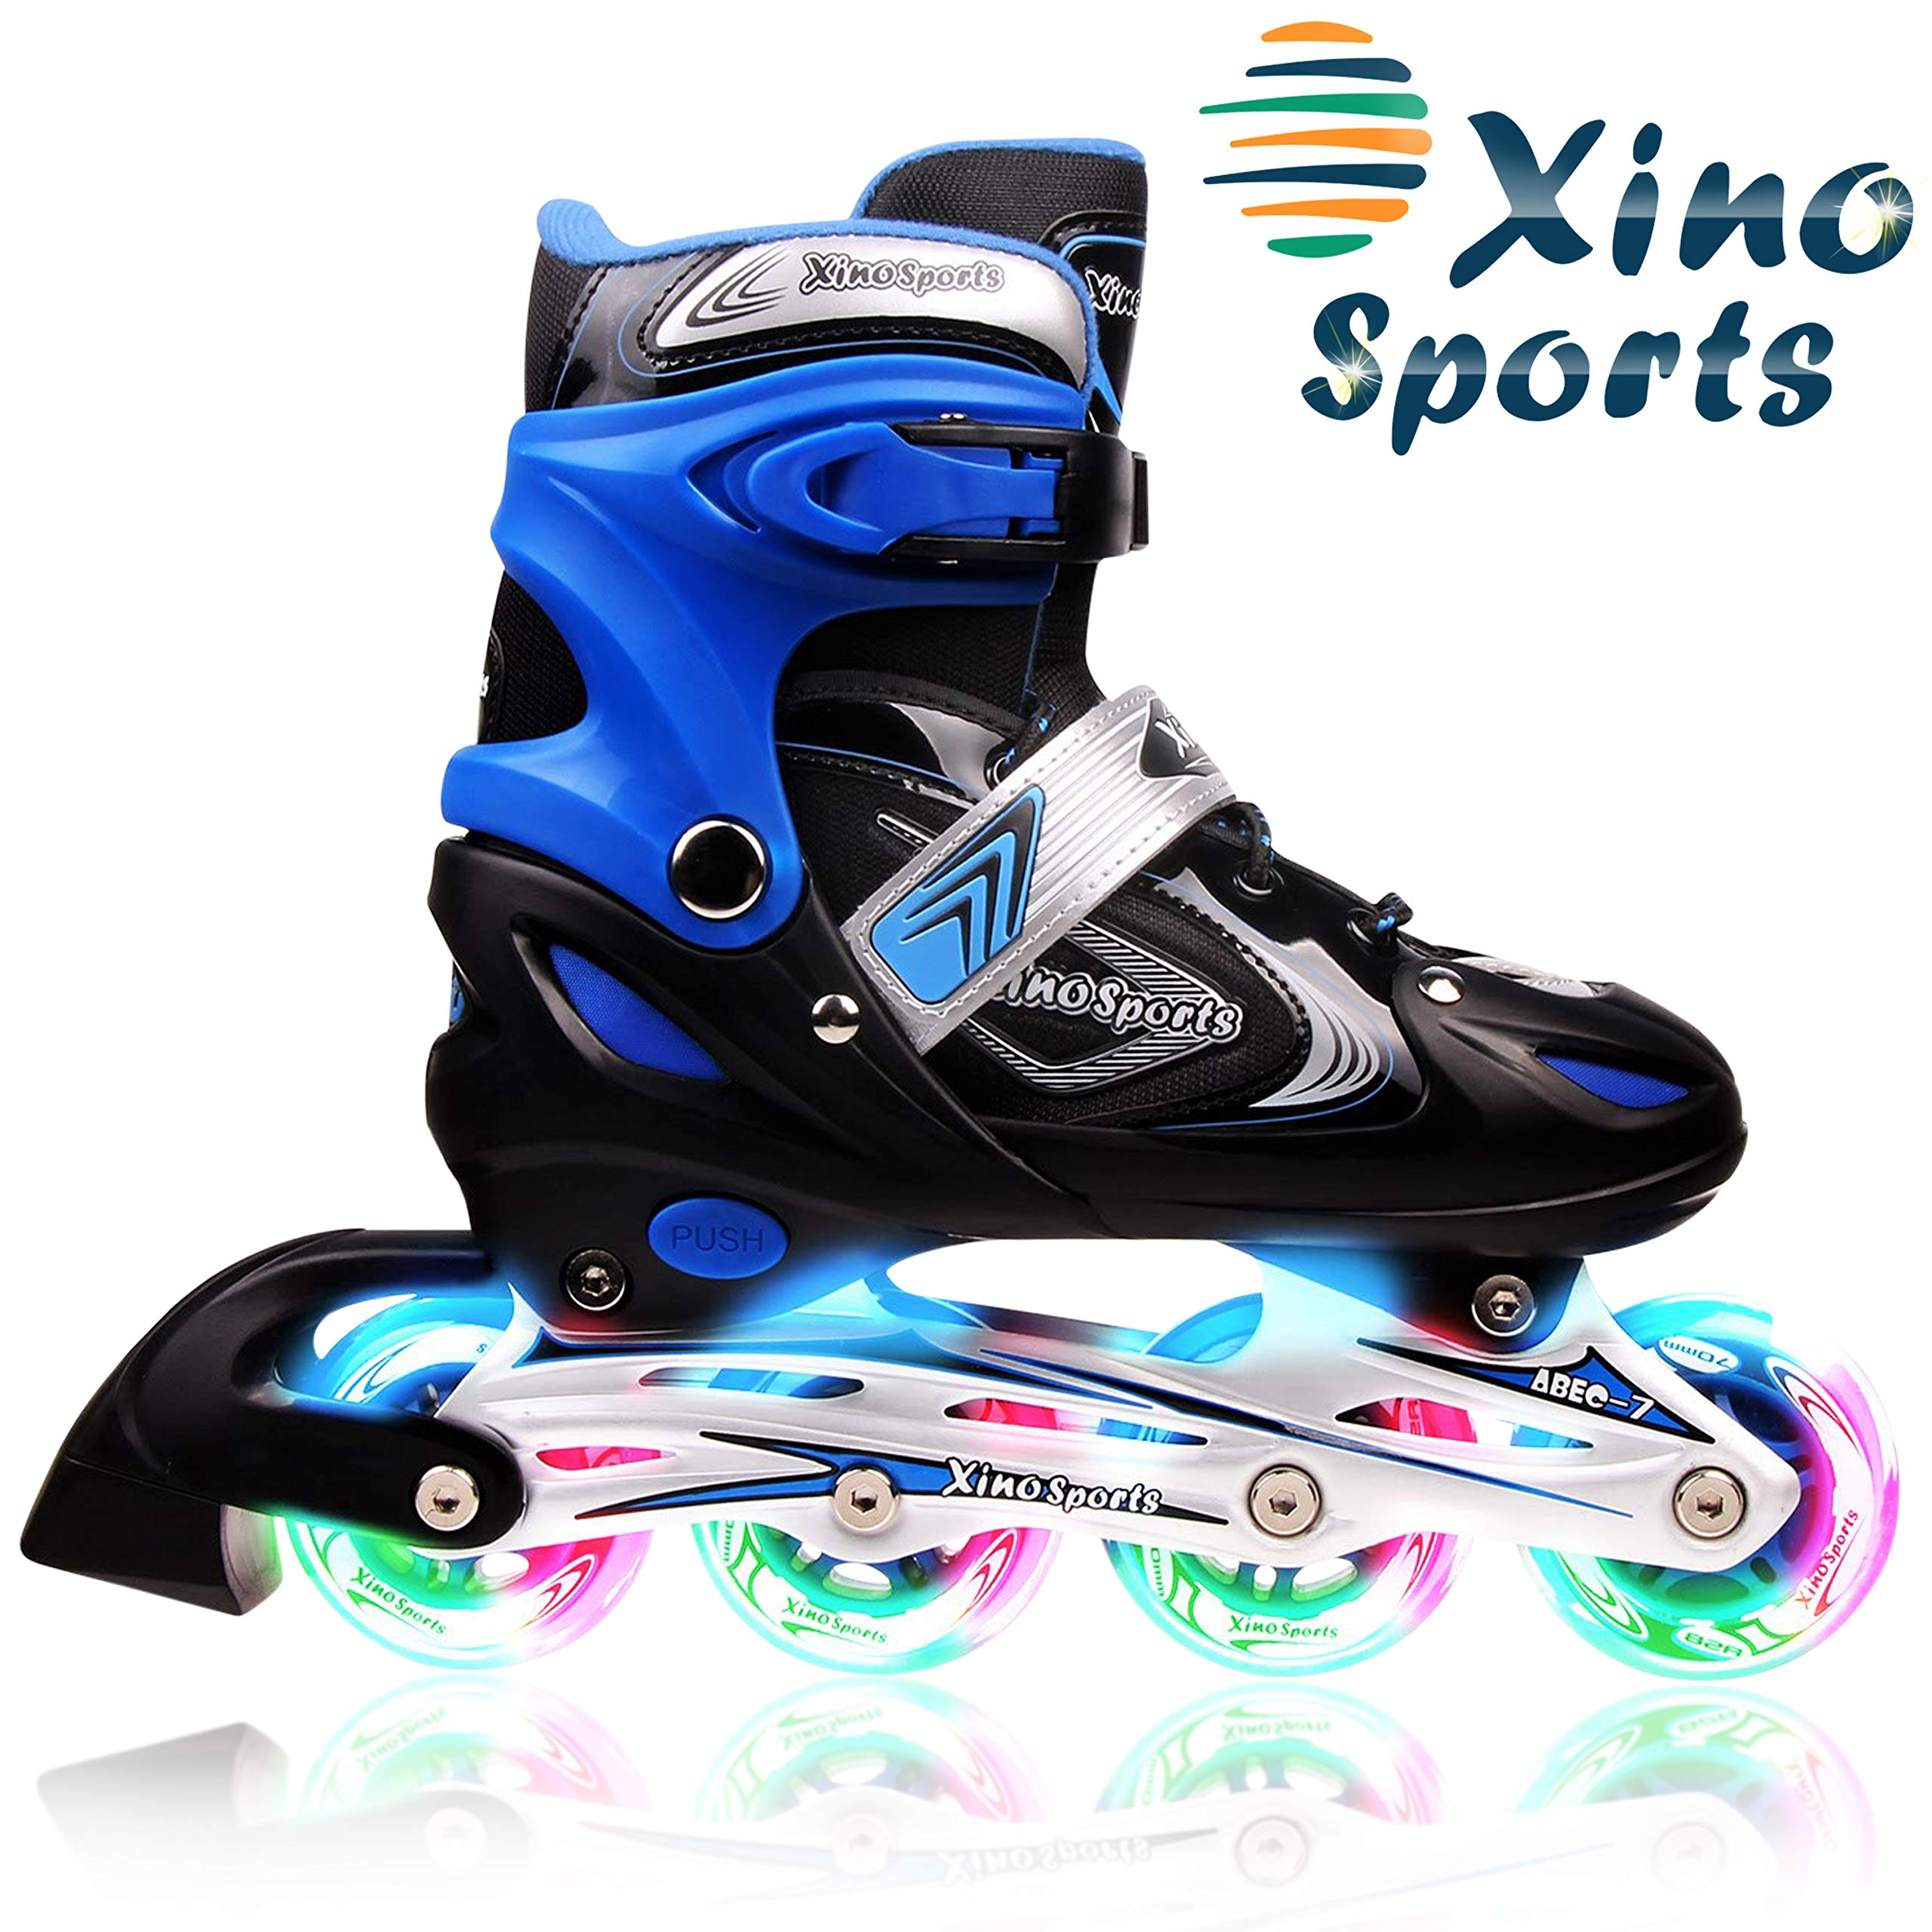 6bf43dce0d3 Amazon.com : XinoSports Inline Roller Skates with Light Up Illuminating  Wheels, for Growing Girls and Boys Ages 5-20 : Sports & Outdoors